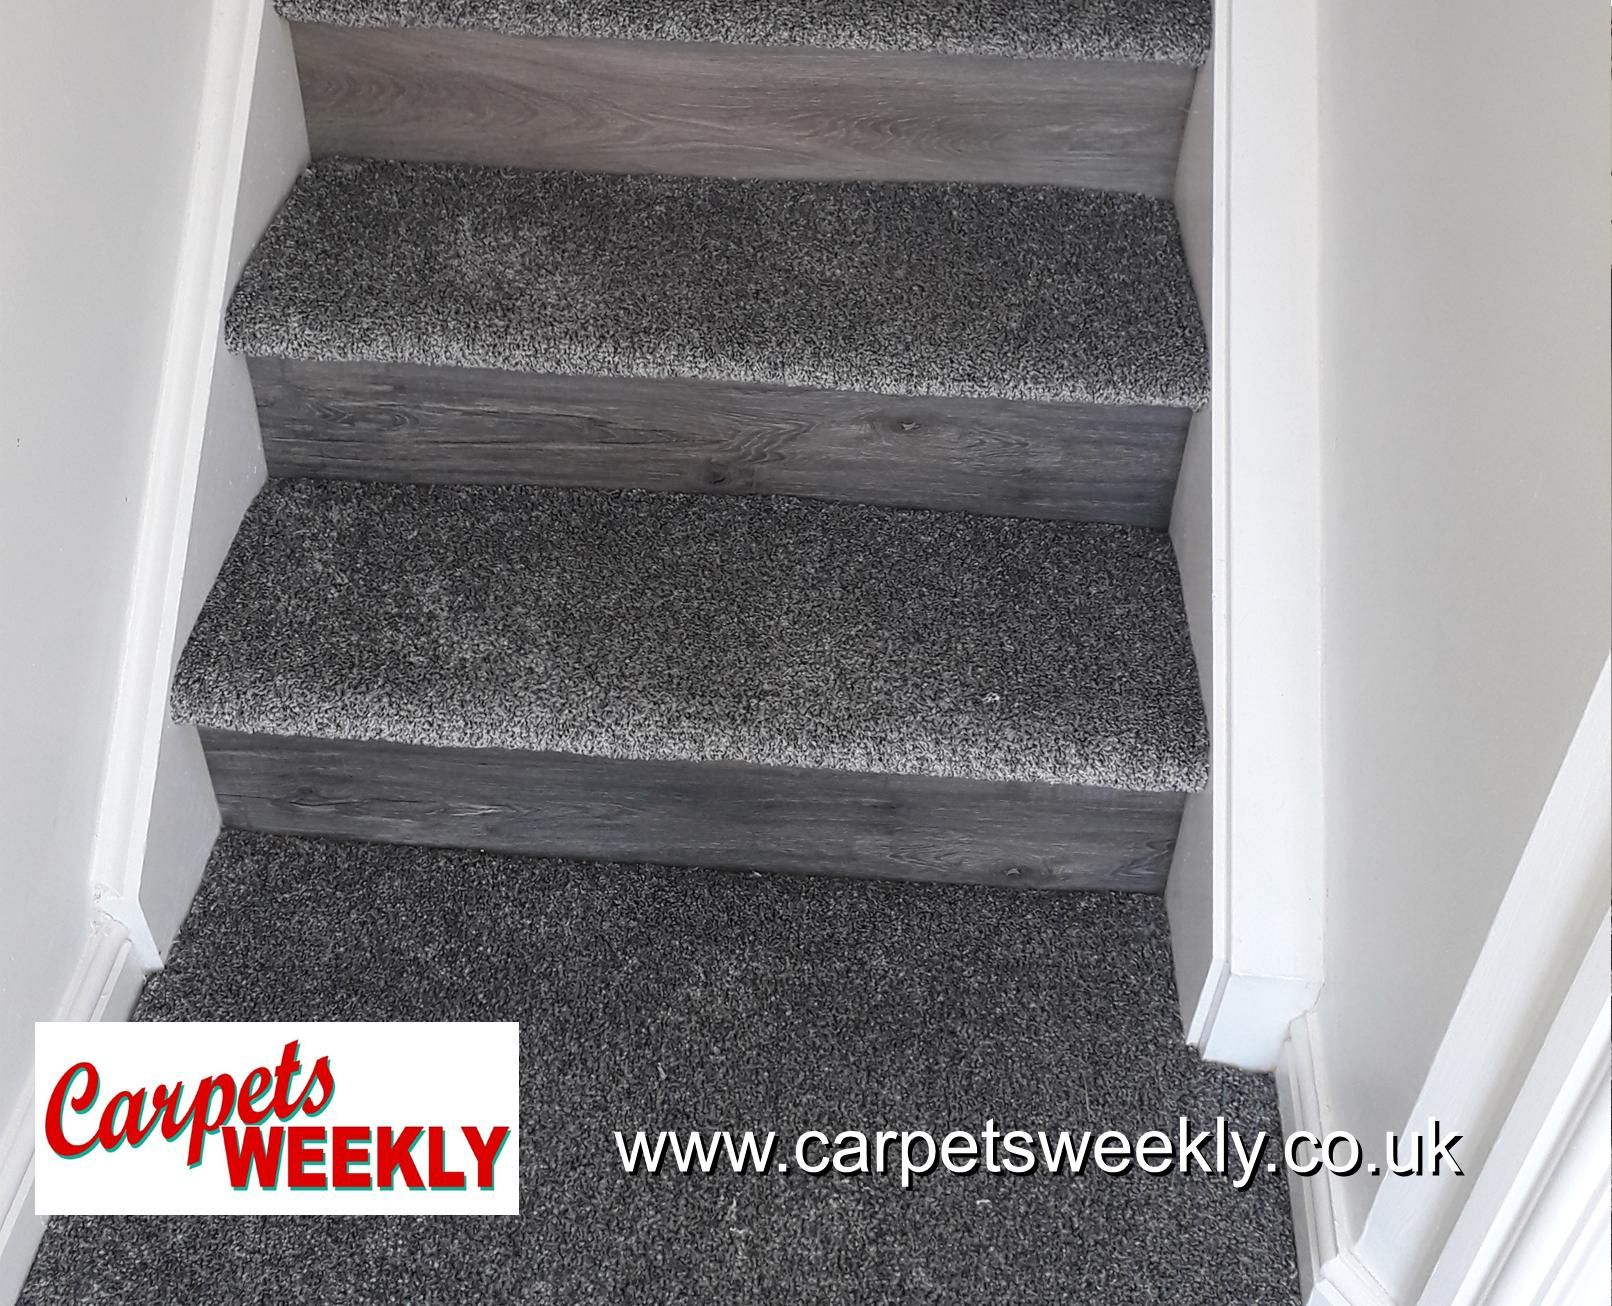 Carpets Weekly, Combi Stairs - Apollo Dark Grey Carpet and NEW Grey Oak LVT on risers